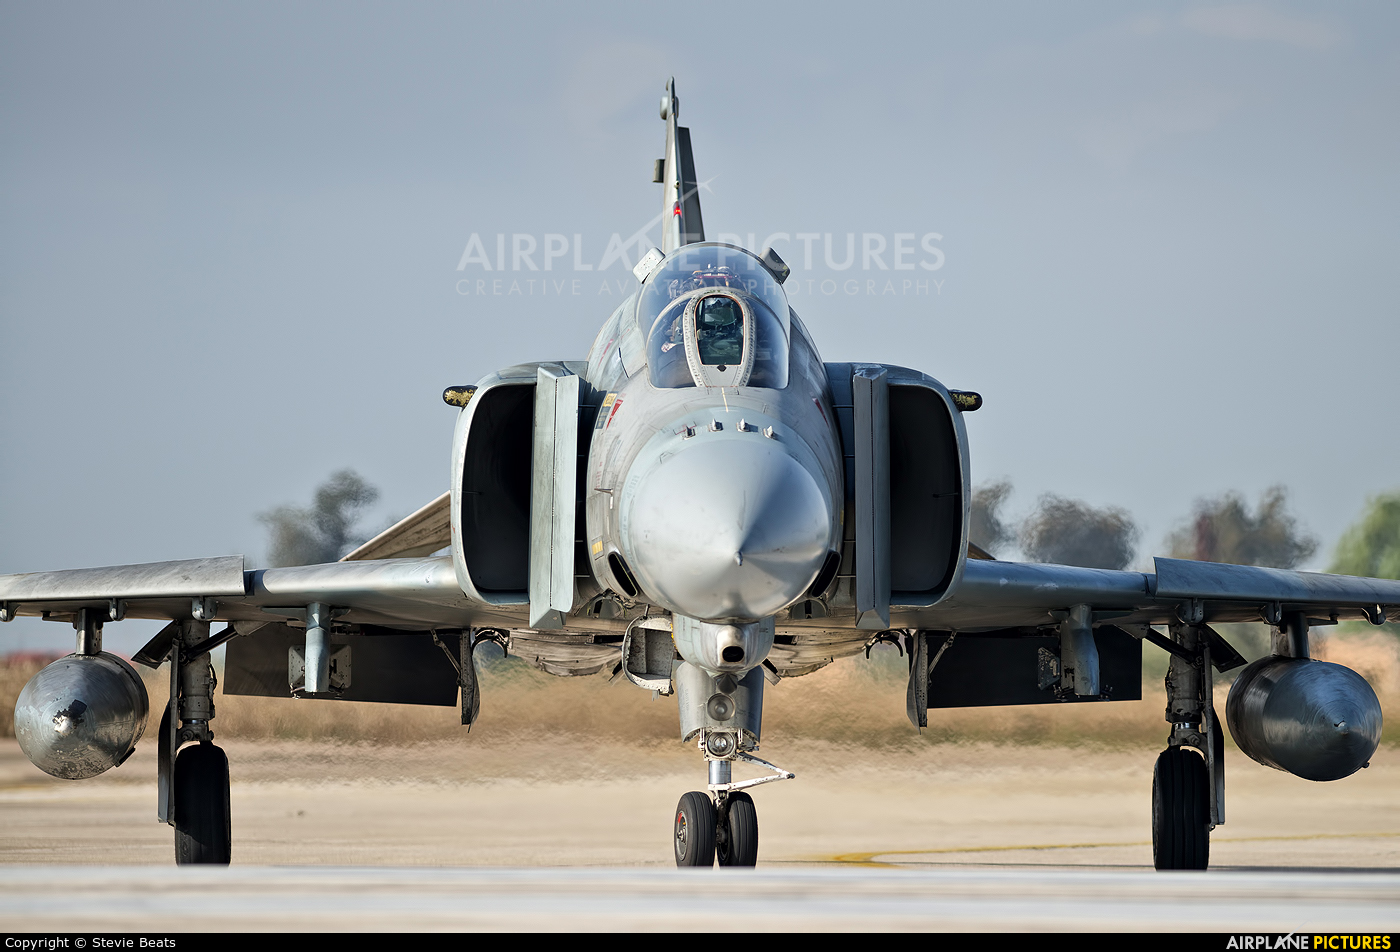 Greece - Hellenic Air Force 01503 aircraft at Andravida AB